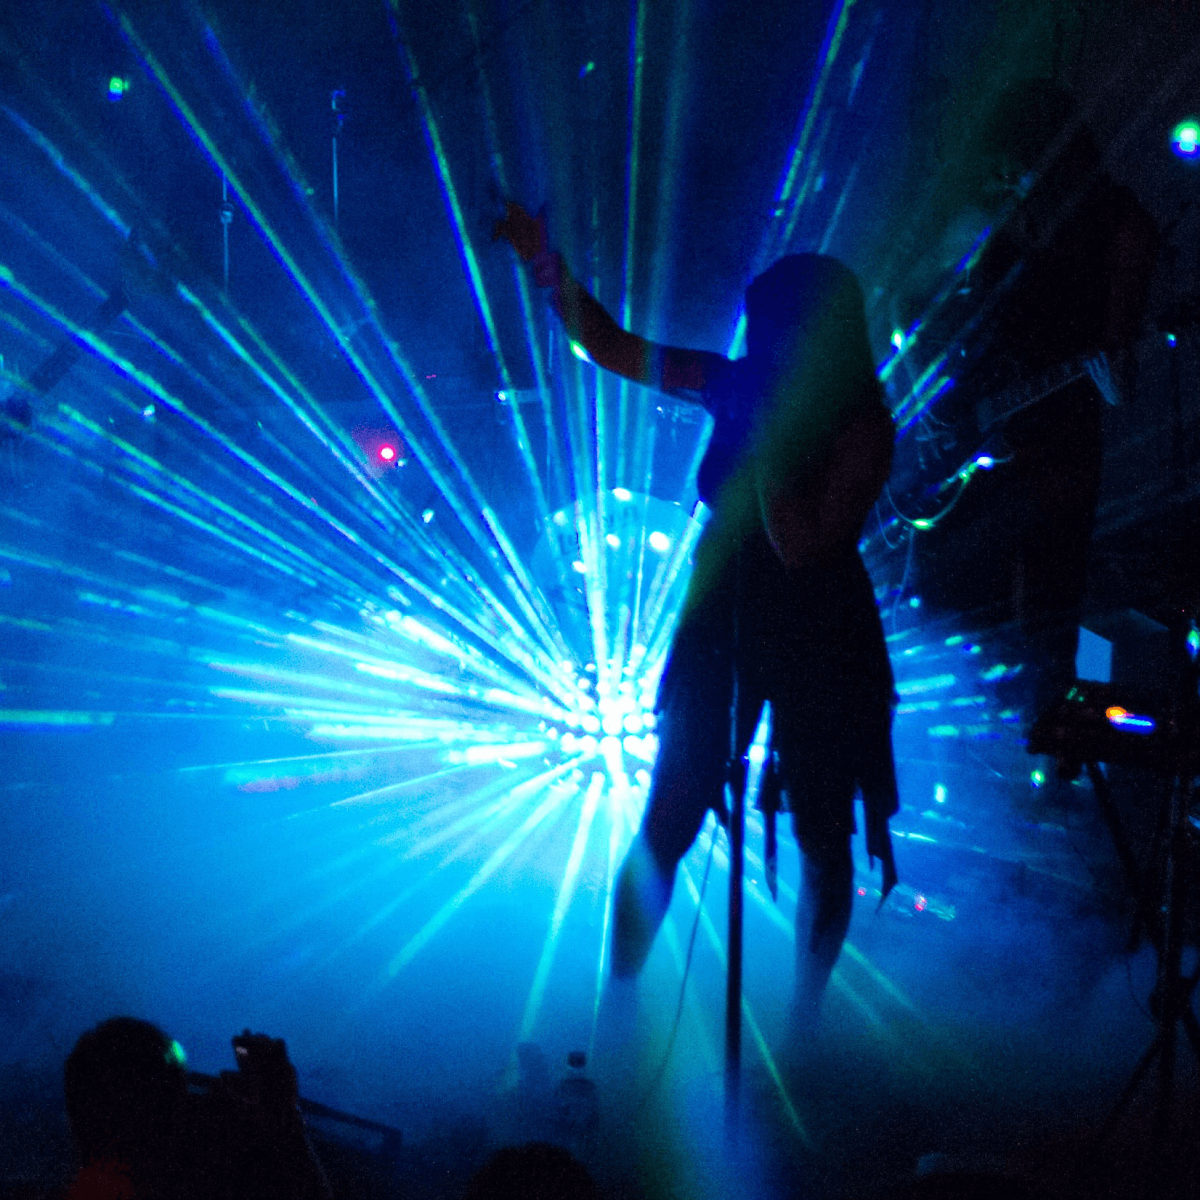 AustinPhotoSetNews_Shelley_psychfest_april2012_18_CROPPED